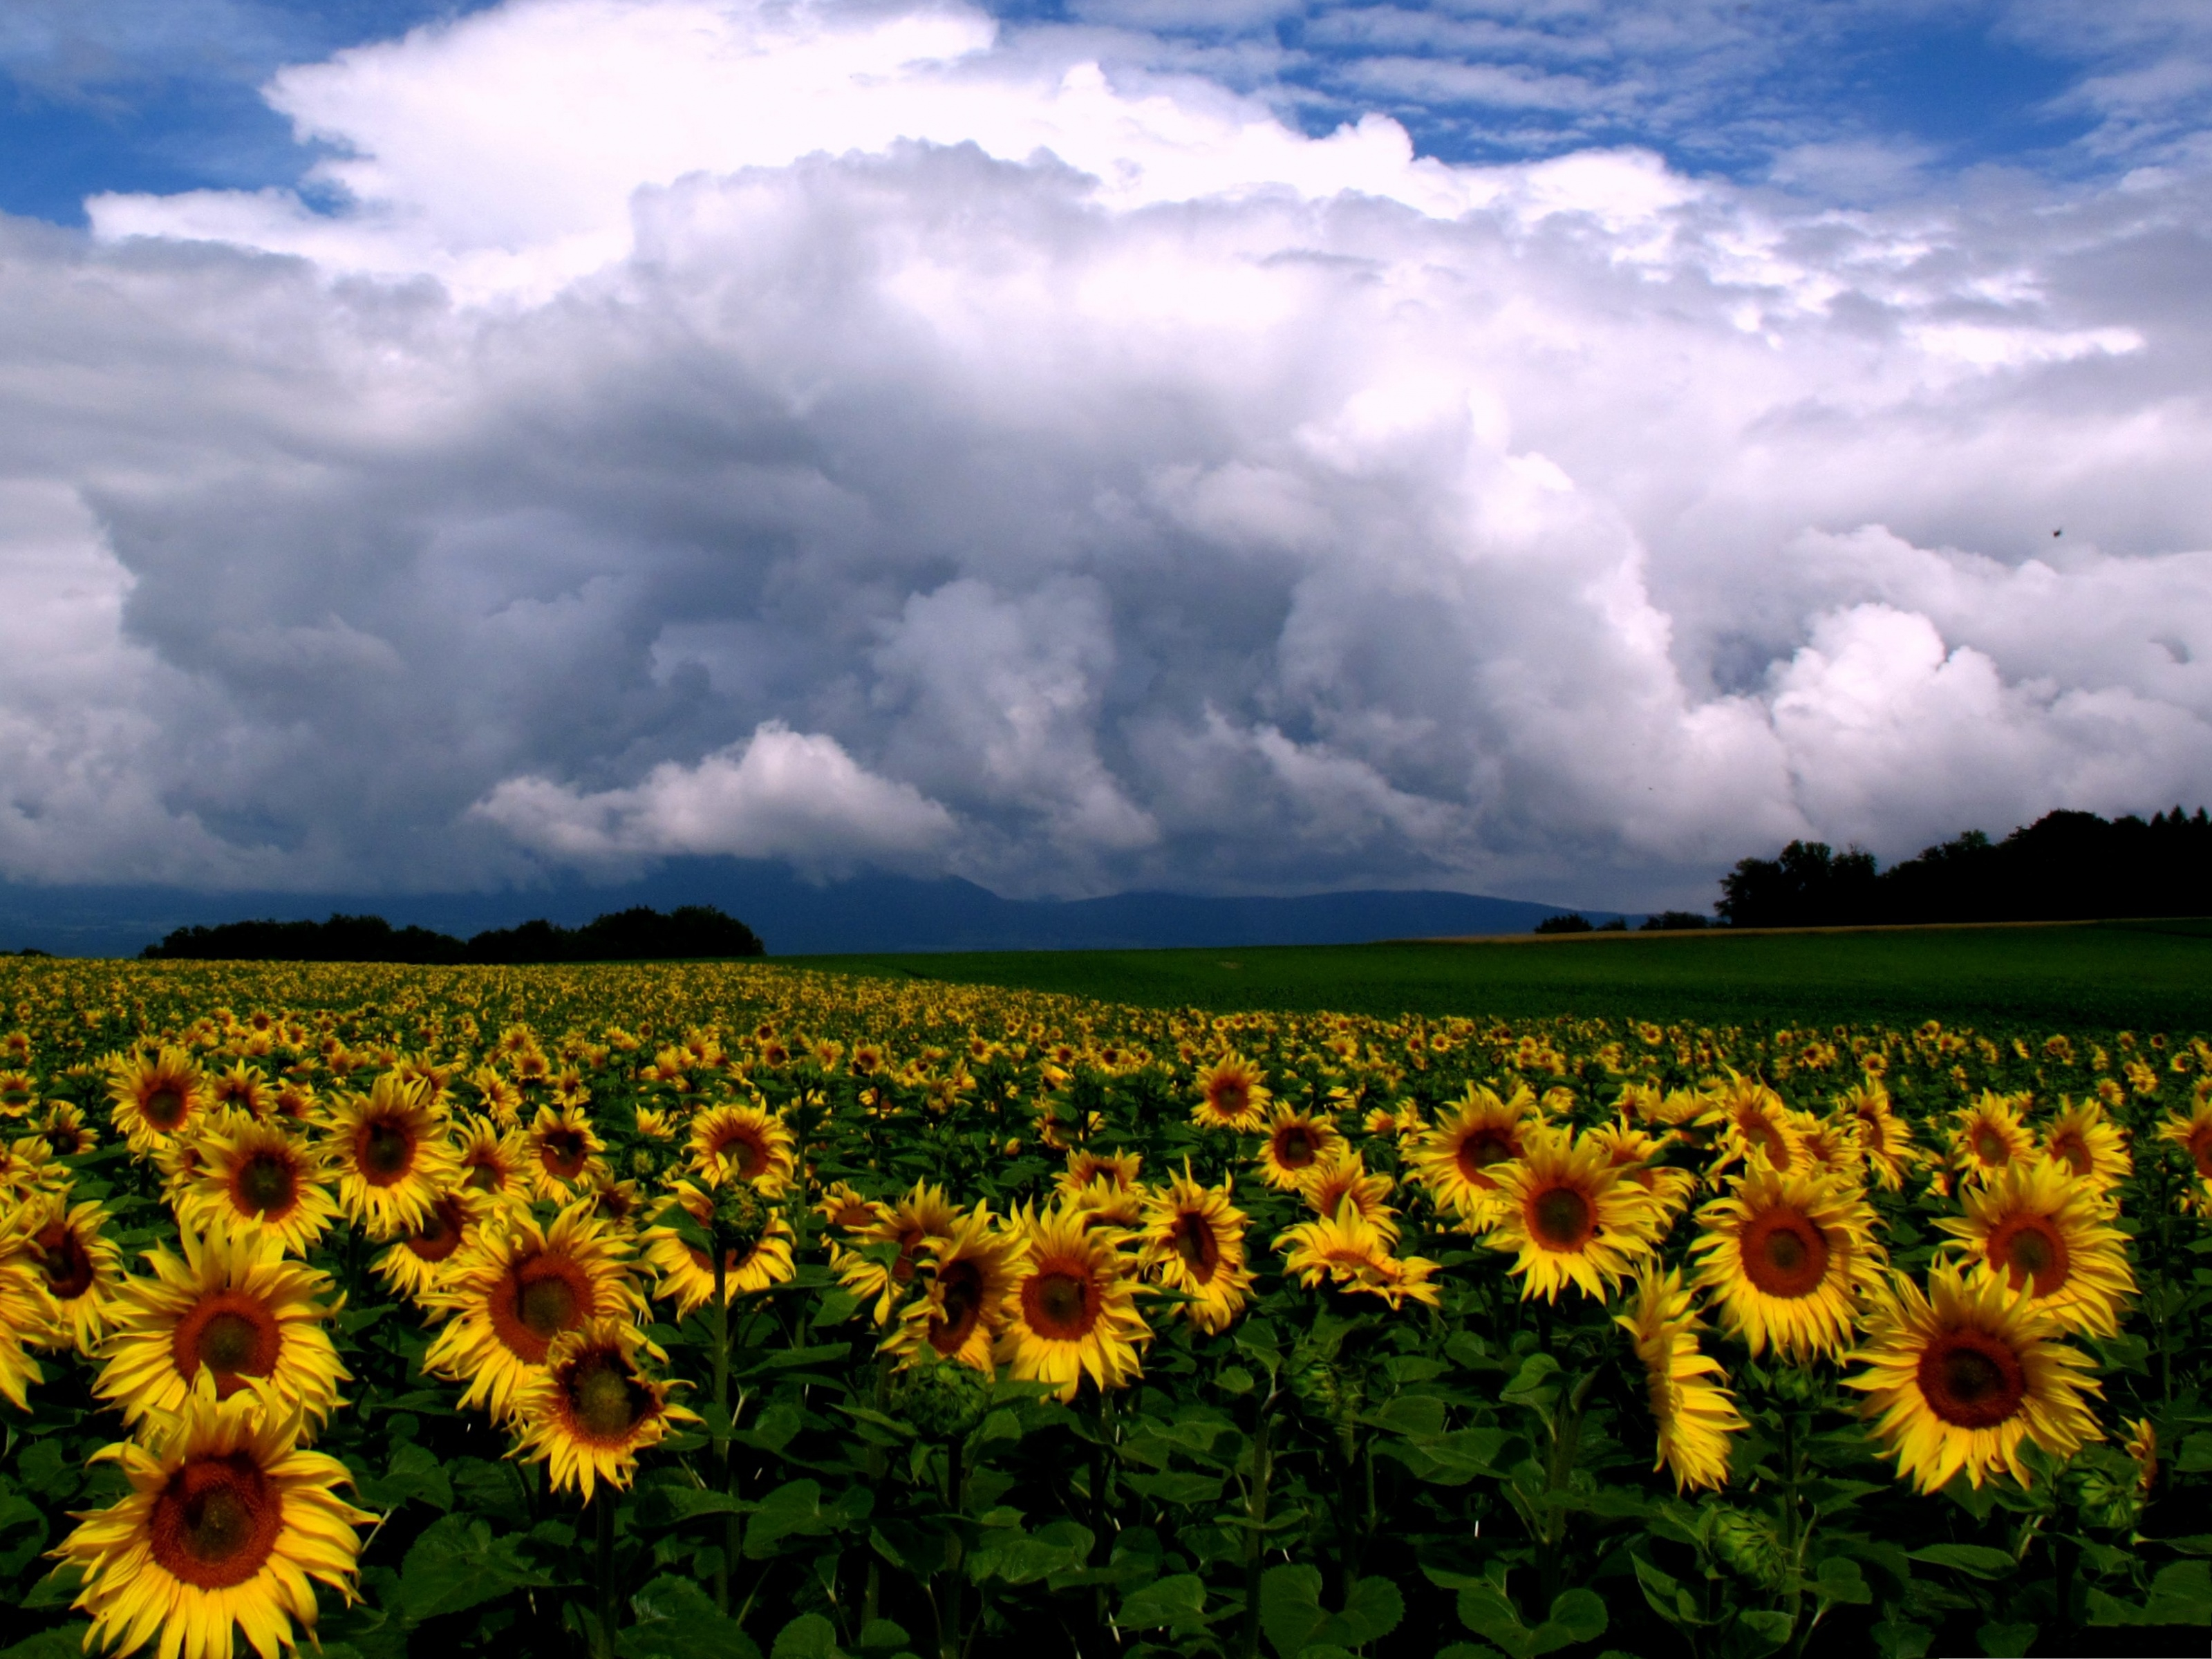 click to free download the wallpaper--Nature Sunflowers Picture, Sunflowers Field Under the Blue Sky, Twisting Clouds 3200X2400 free wallpaper download